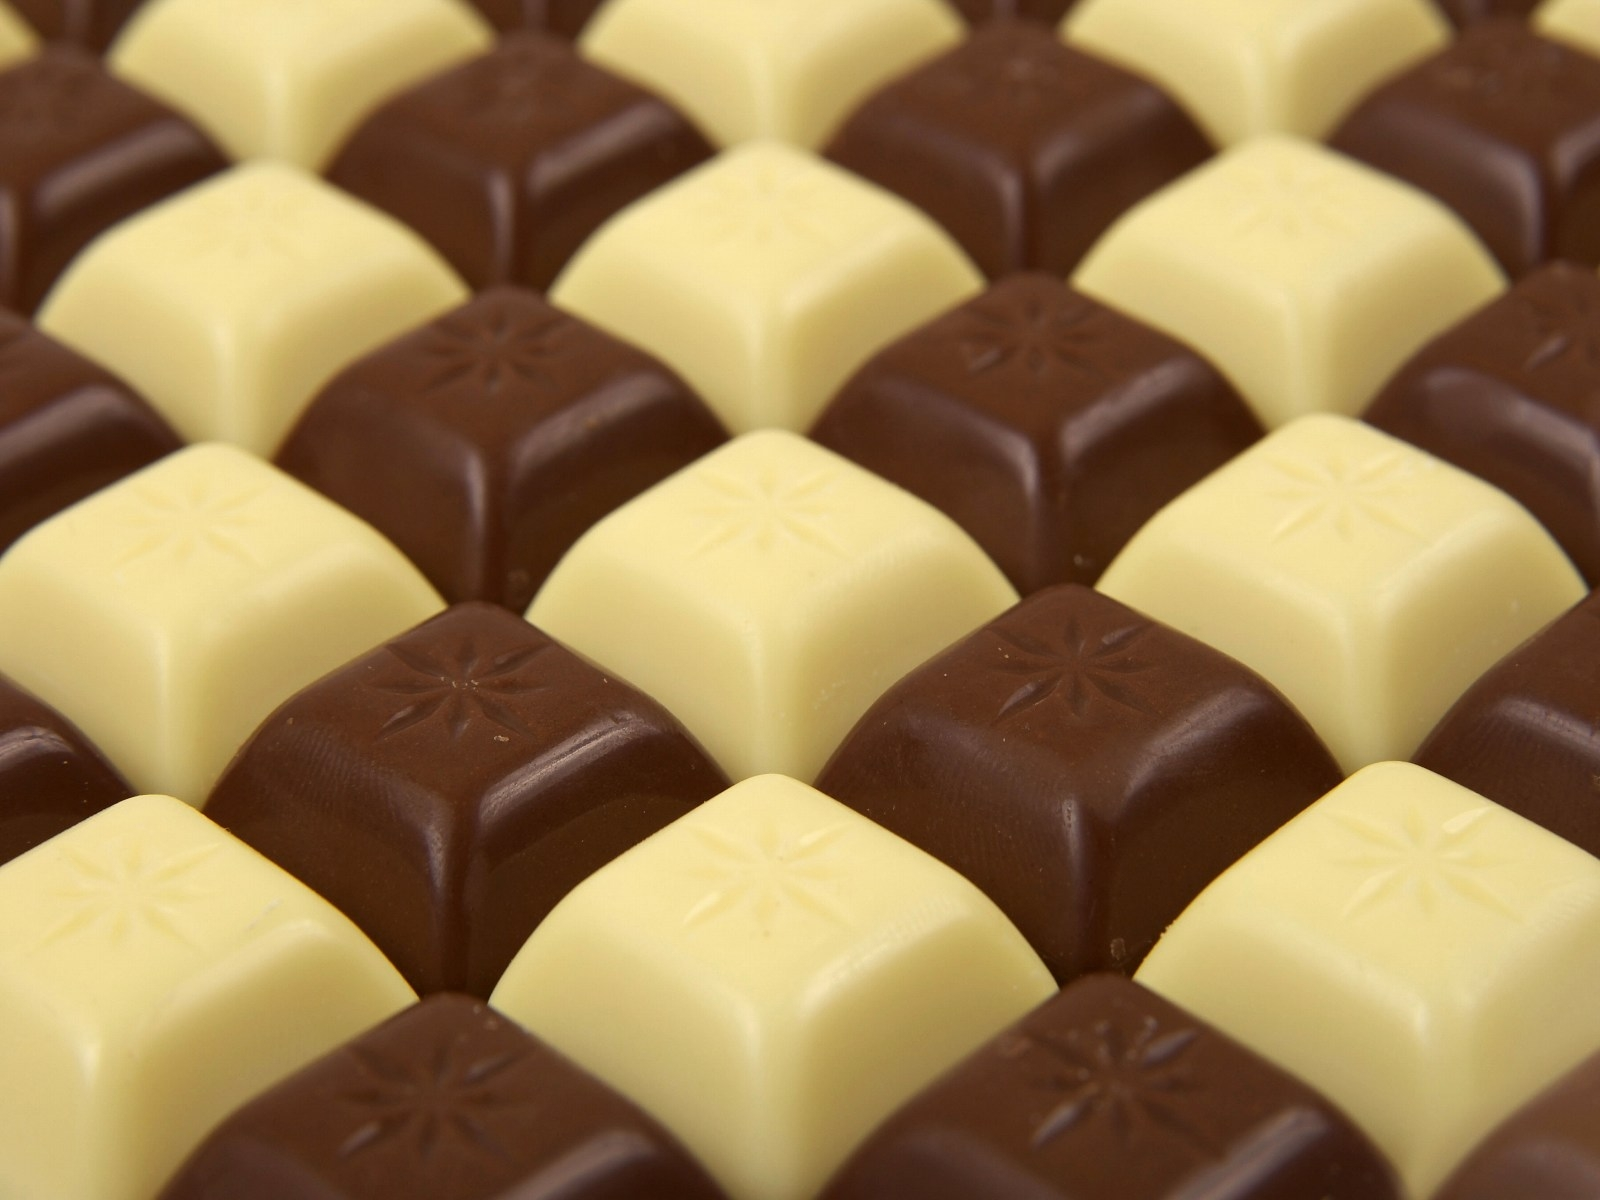 Download Chocolate Candy Wallpaper Gallery